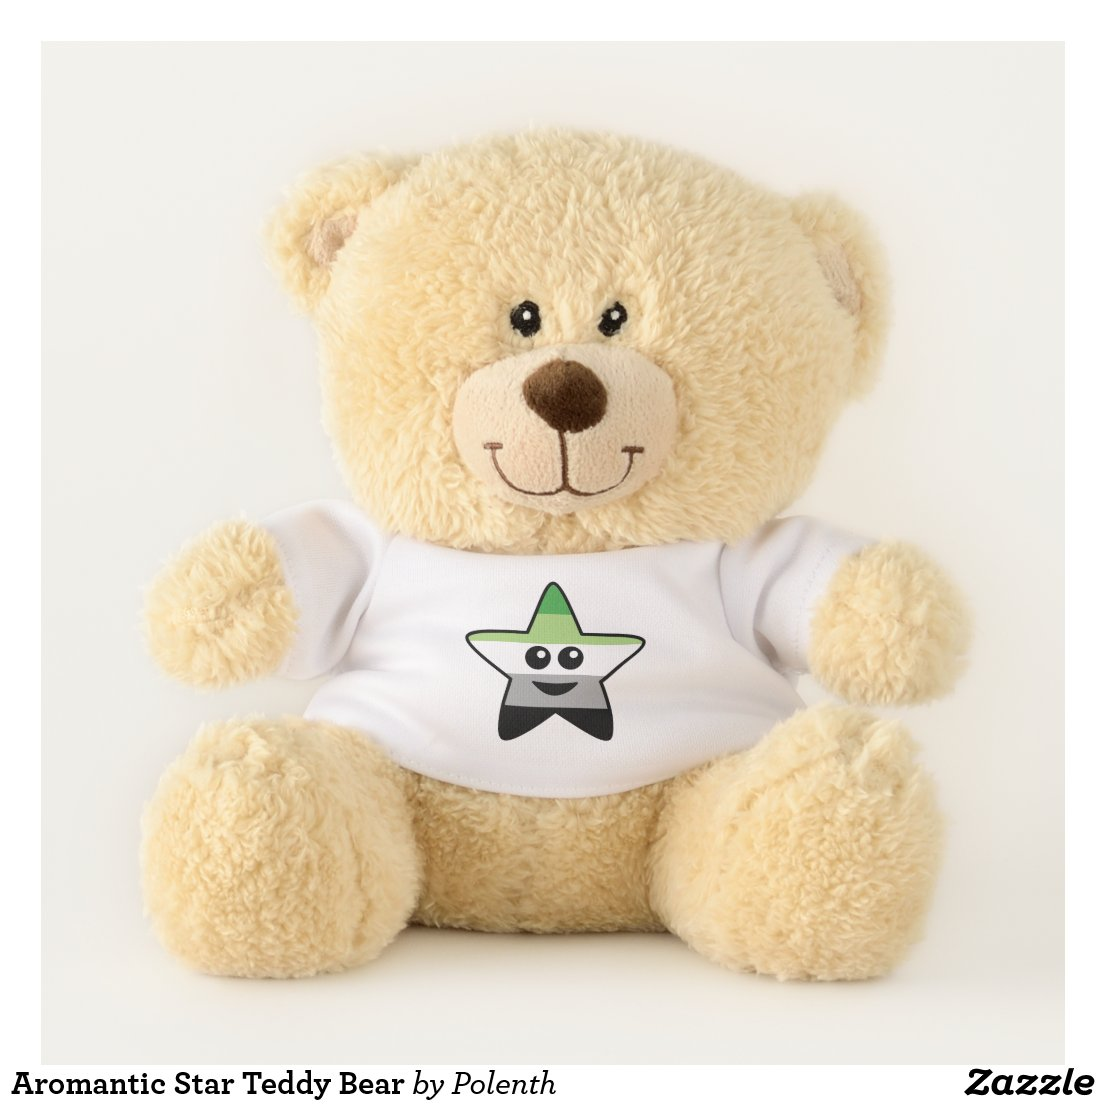 Aromantic Star Teddy Bear